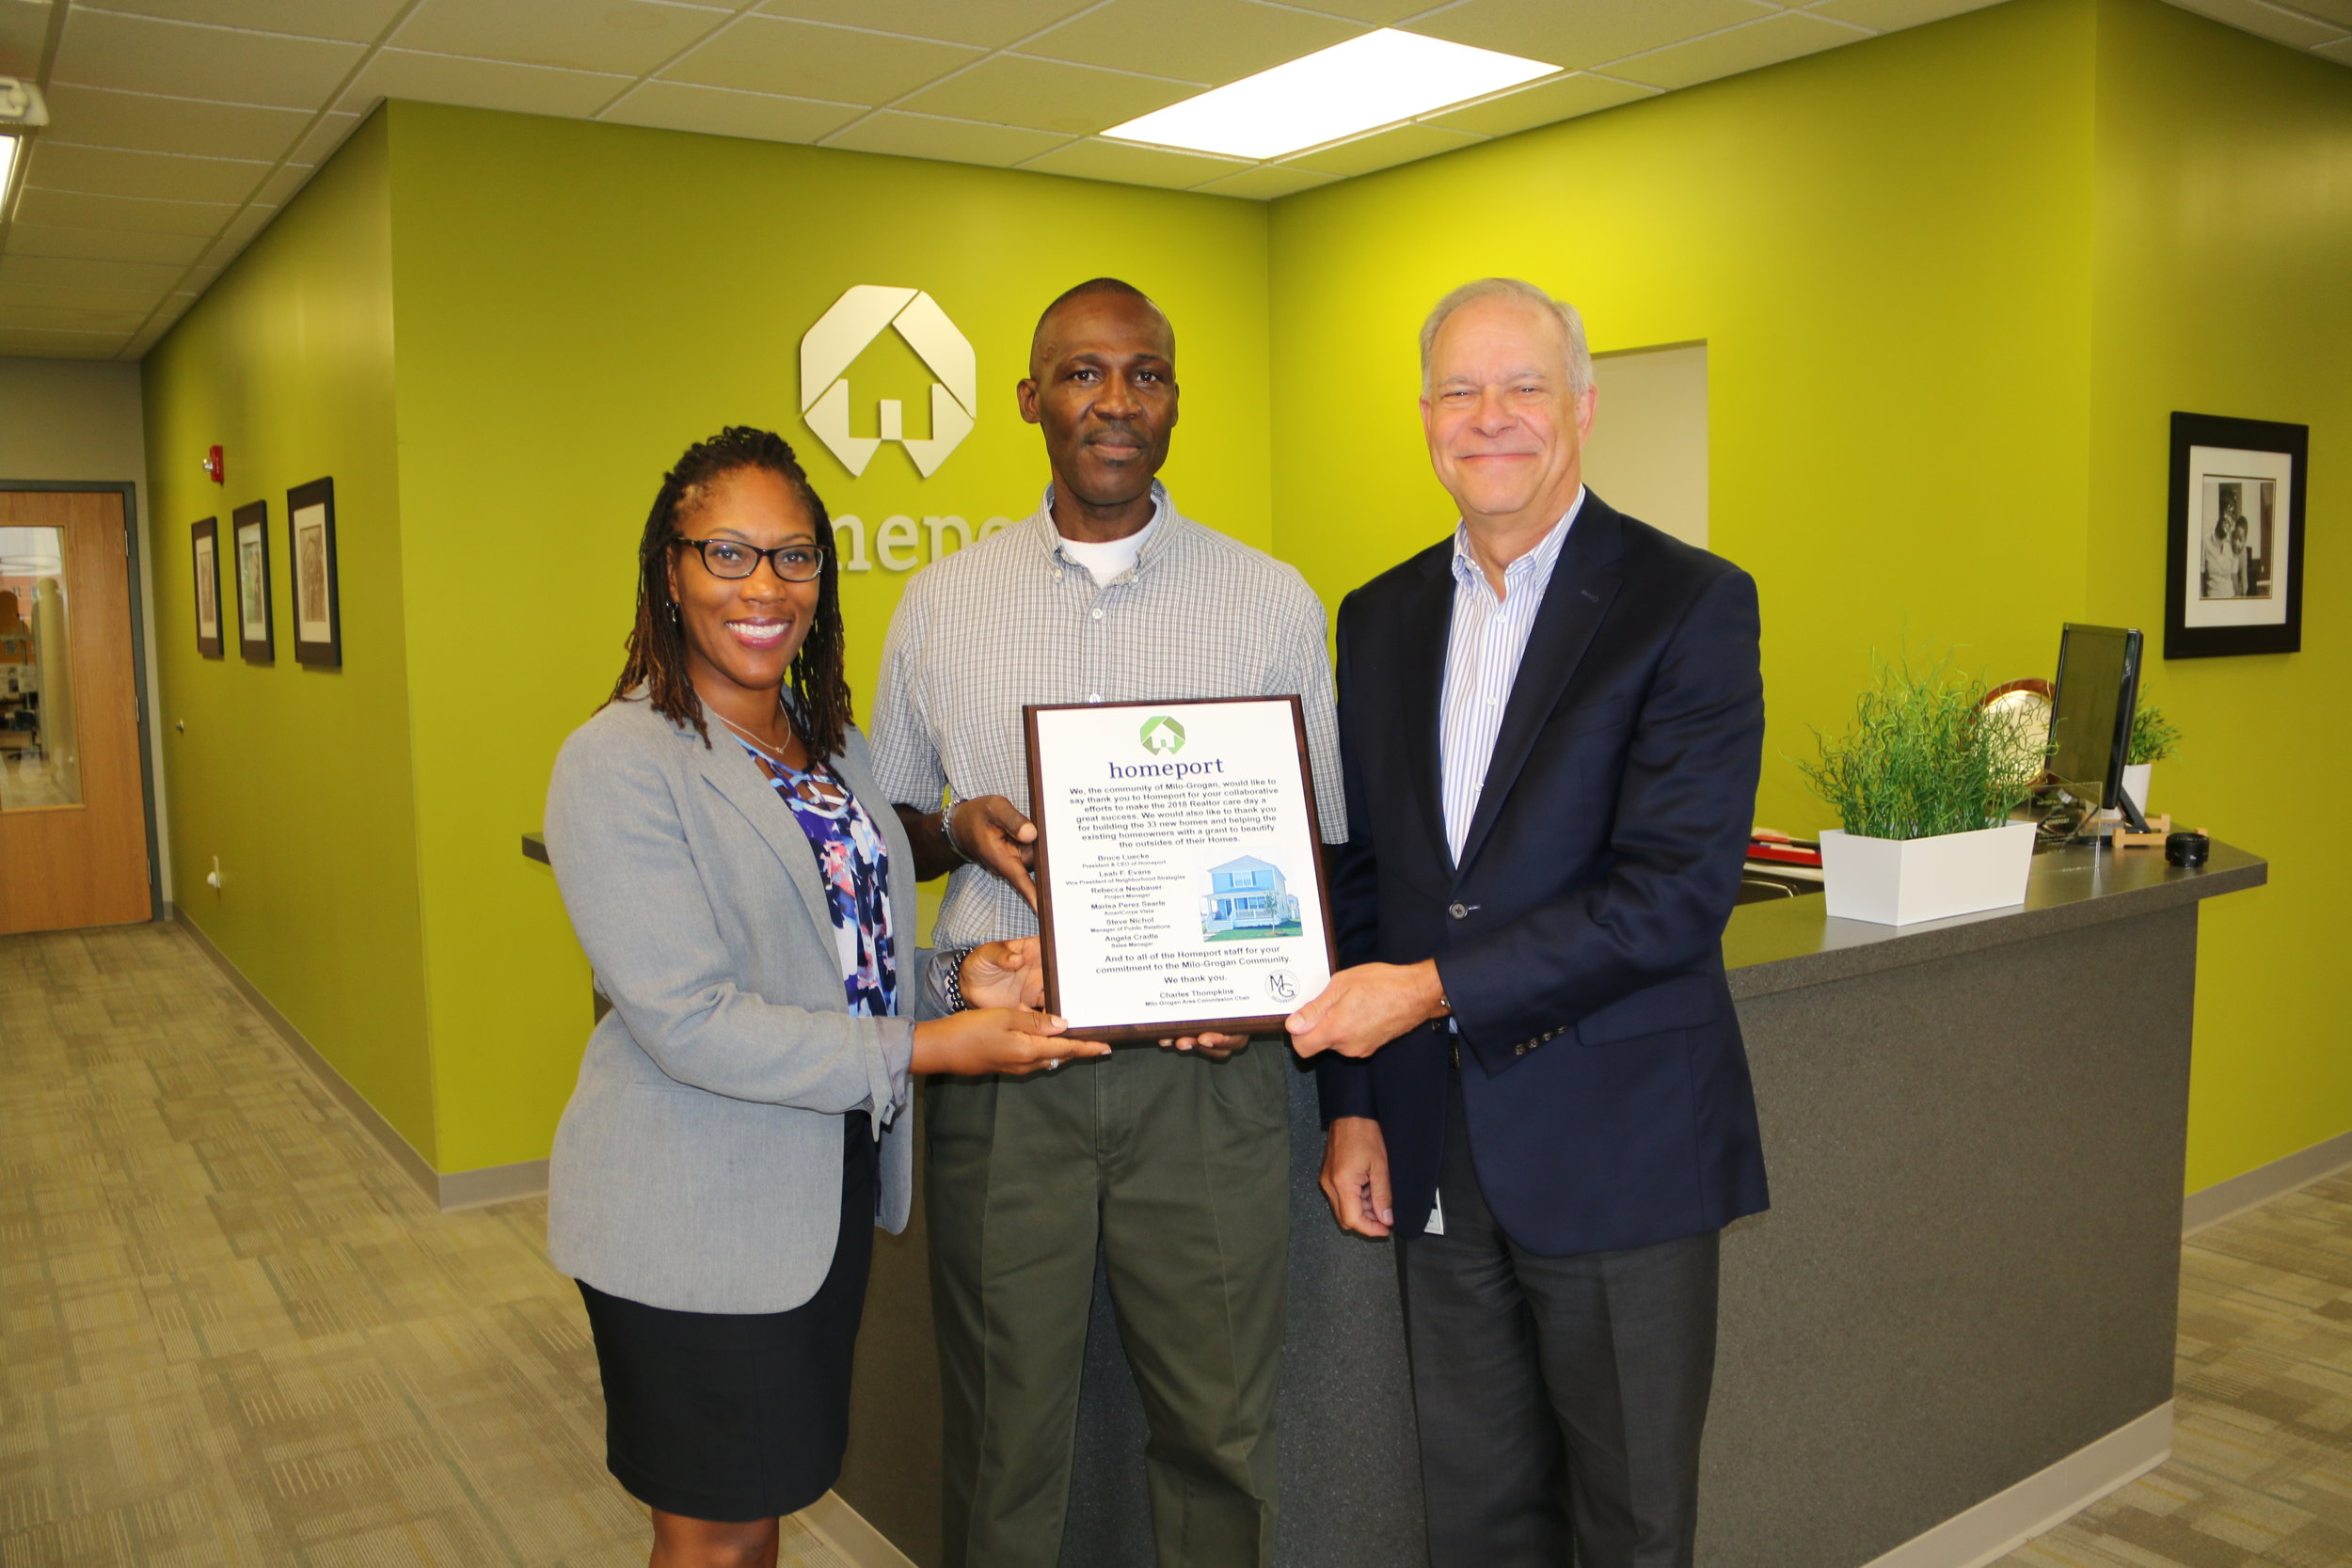 Homeport Vice President of Neighborhood Strategy Leah Evans, left, and Homeport President & CEO Bruce Luecke, right, accepted a plaque of thanks from Milo-Grogan Area Commission Chair Charles Thompkins .